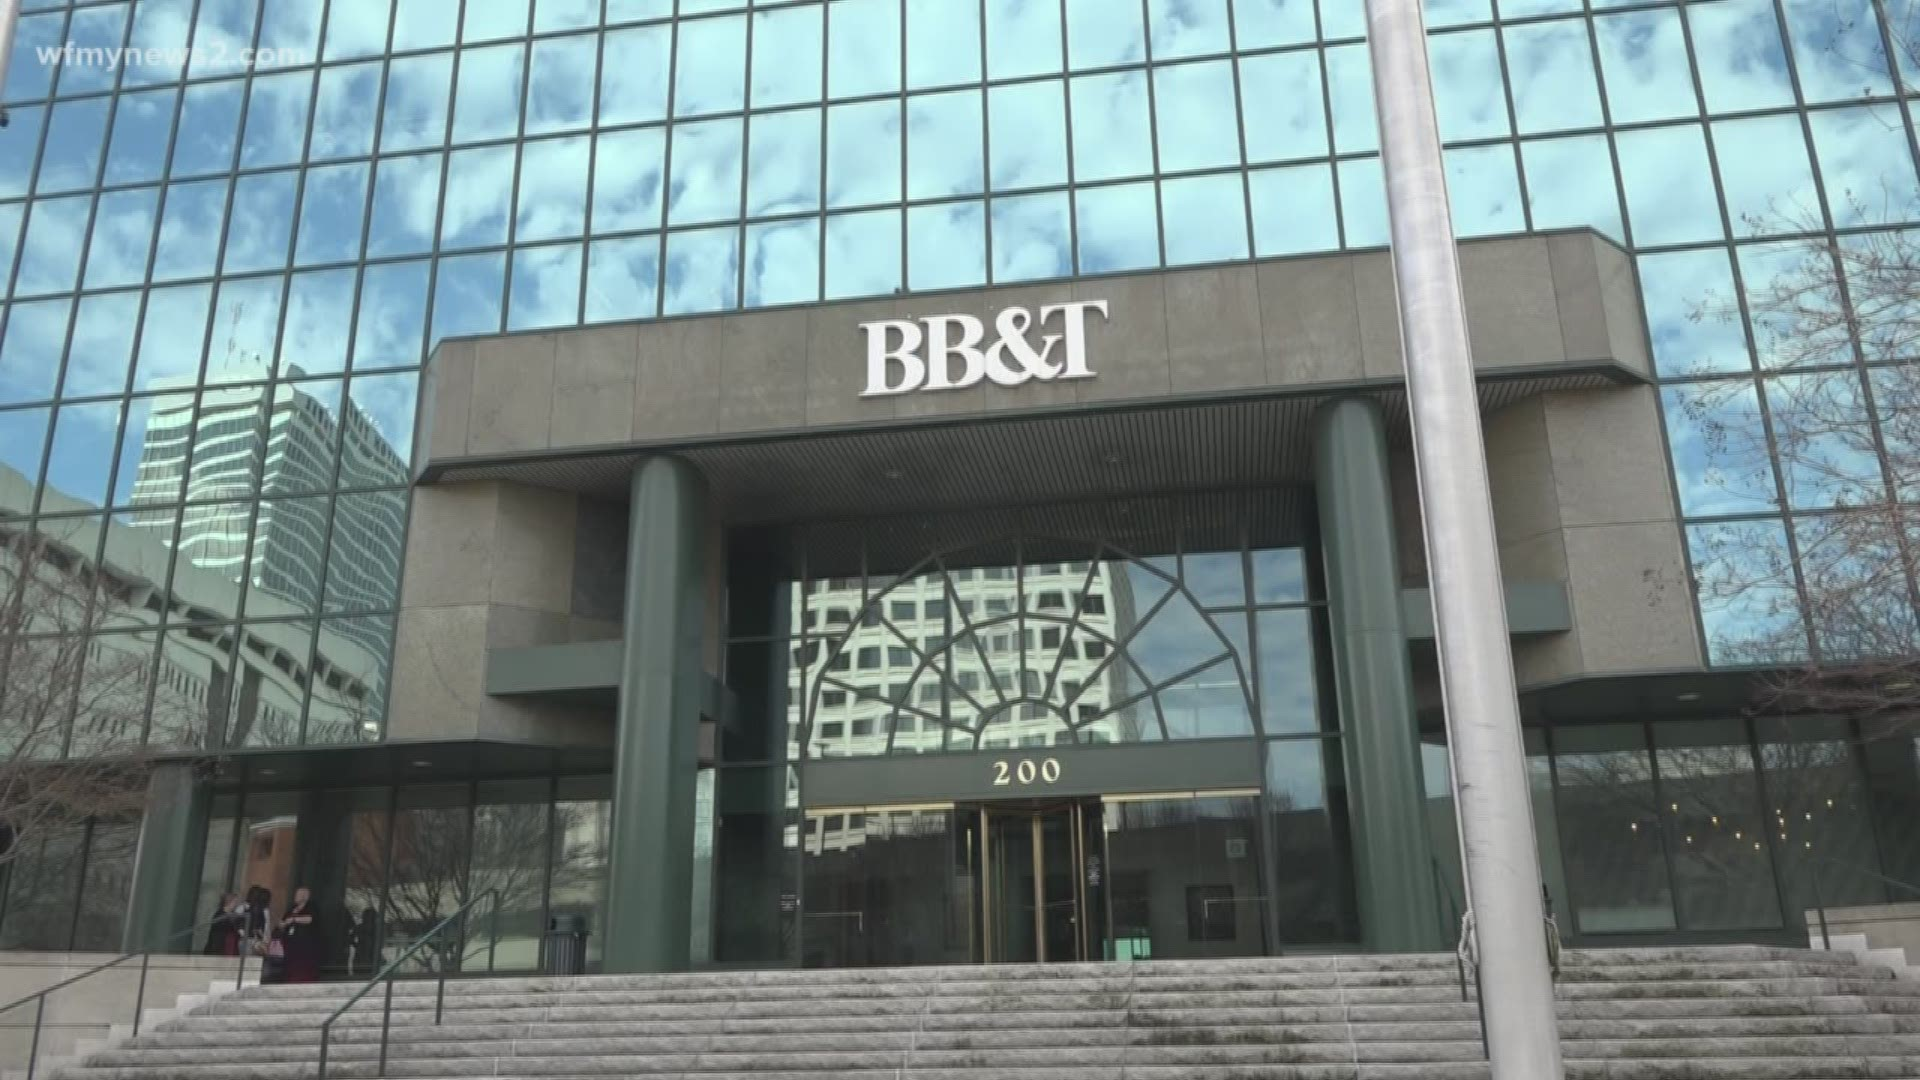 bb&t and regions merger